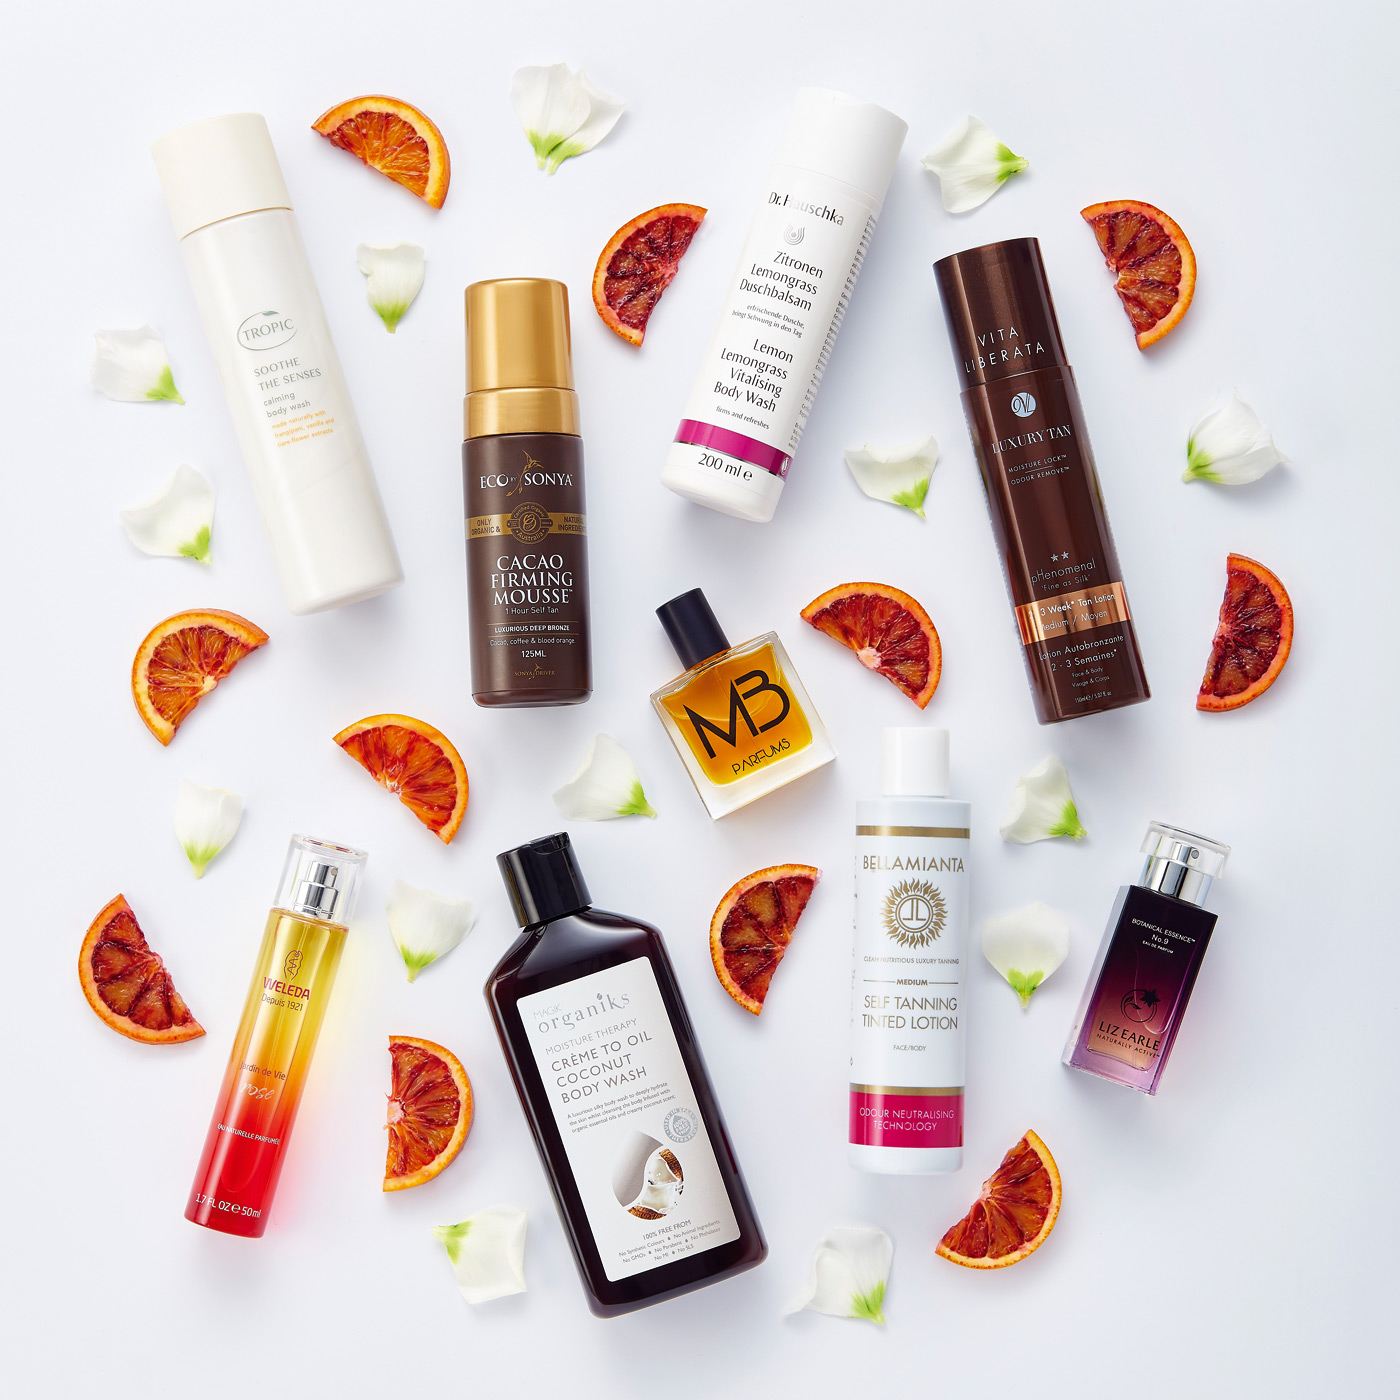 Beauty products photographed with orange segments